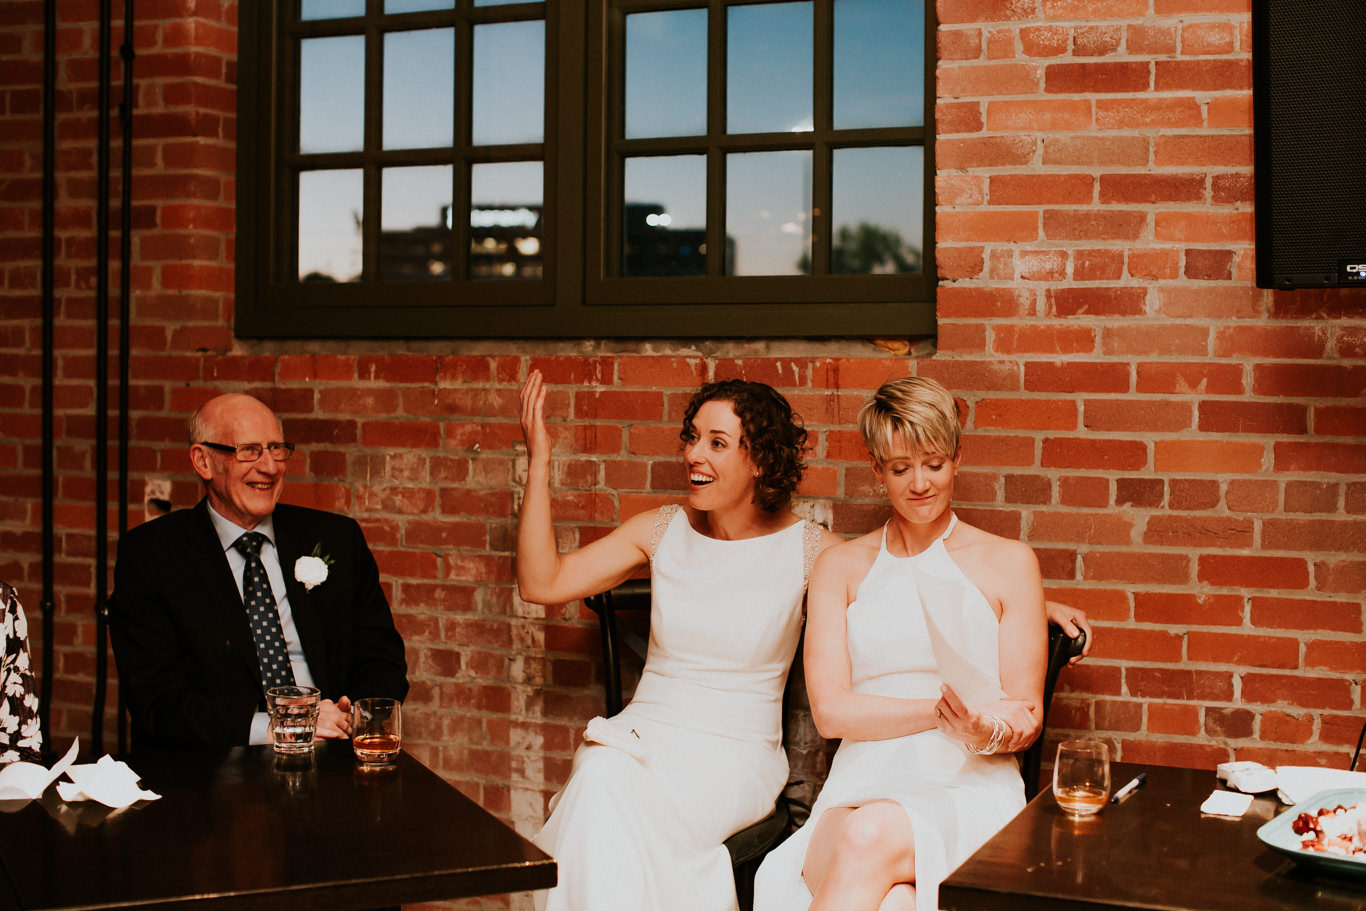 Lindsay-and-Heather-Charbar-Restaurant-Wedding-in-Calgary-195